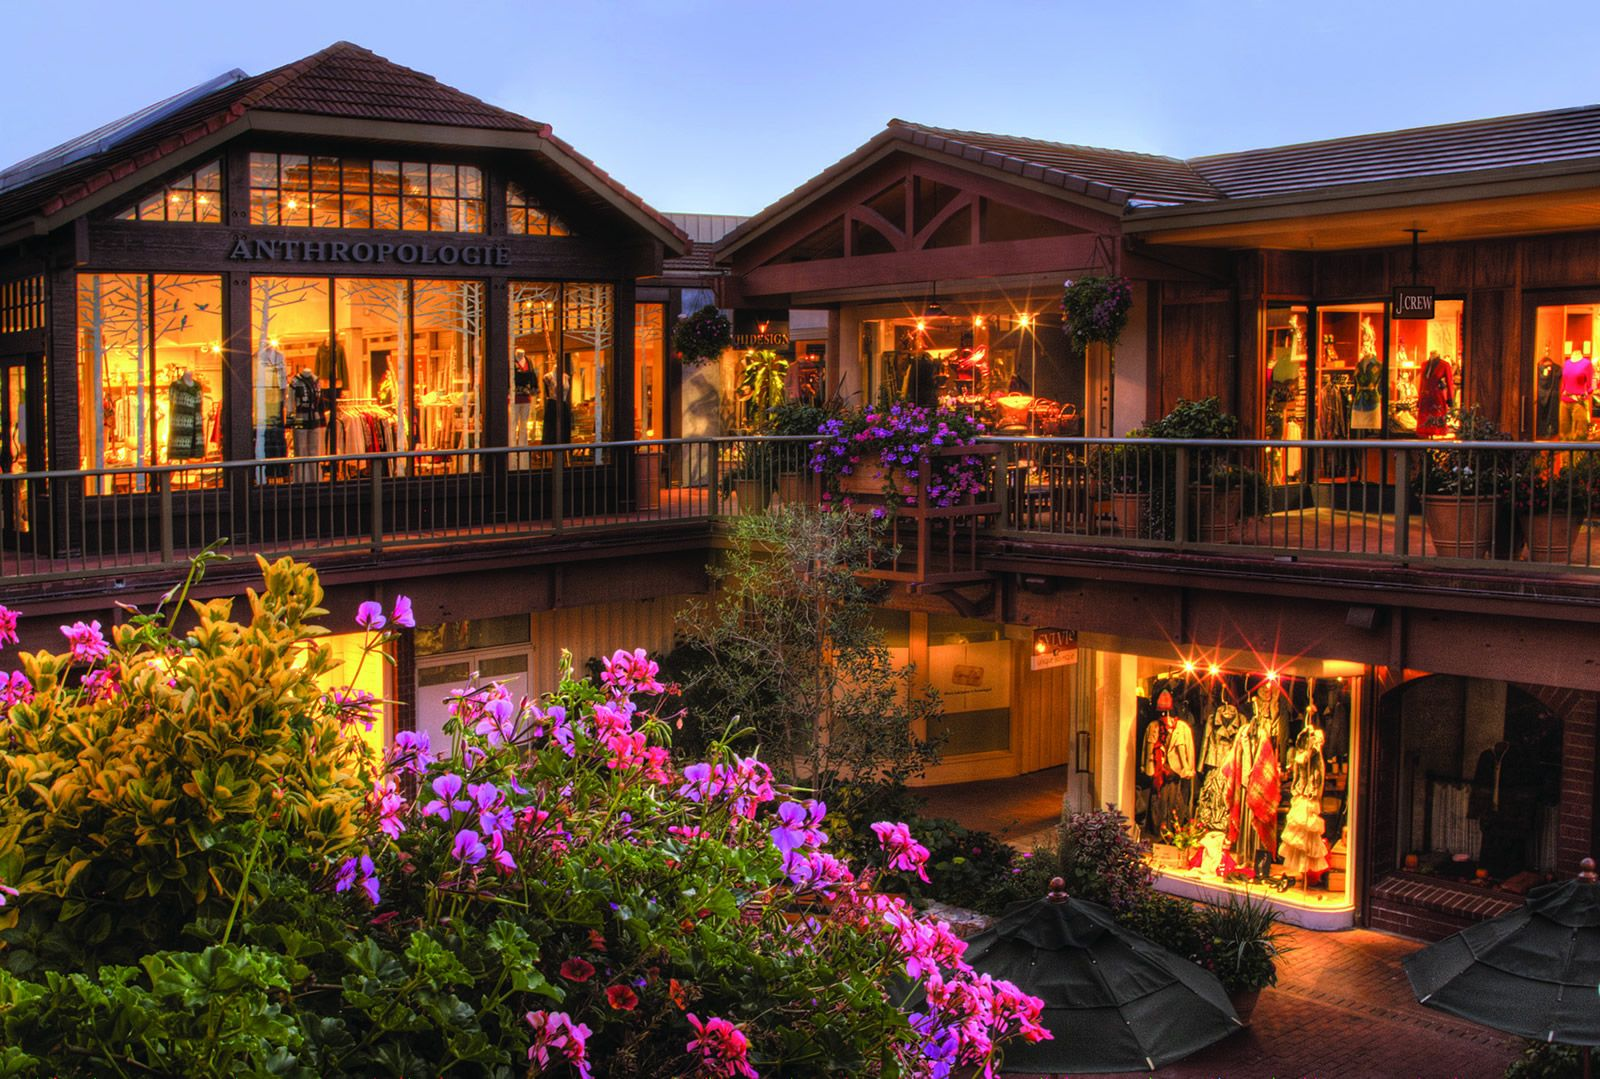 Carmel Plaza is known for its variety of specialty shops and ...